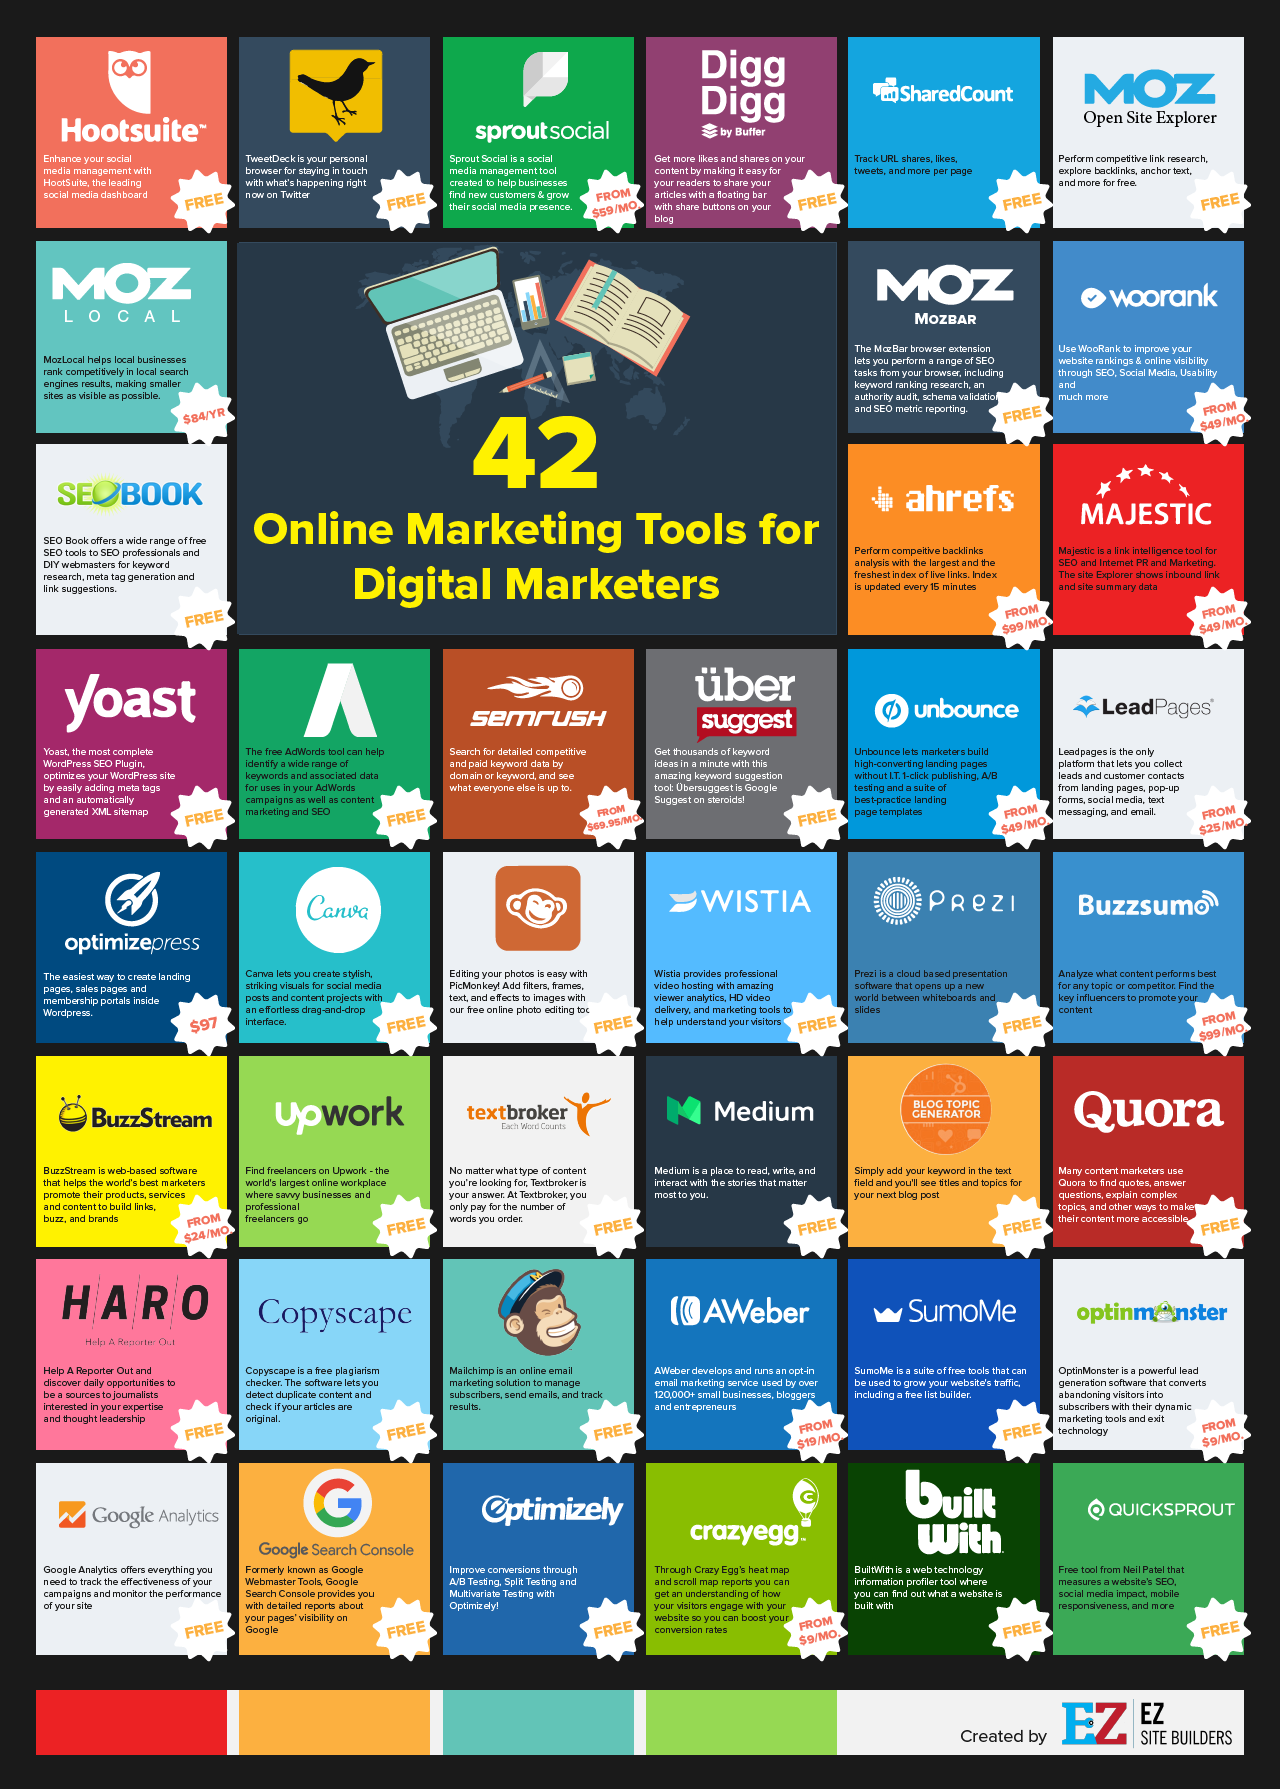 Online marketing tools make tedious, time-consuming tasks so much easier! We've summarized 42 of the best to make choosing a snap. Click to blog!